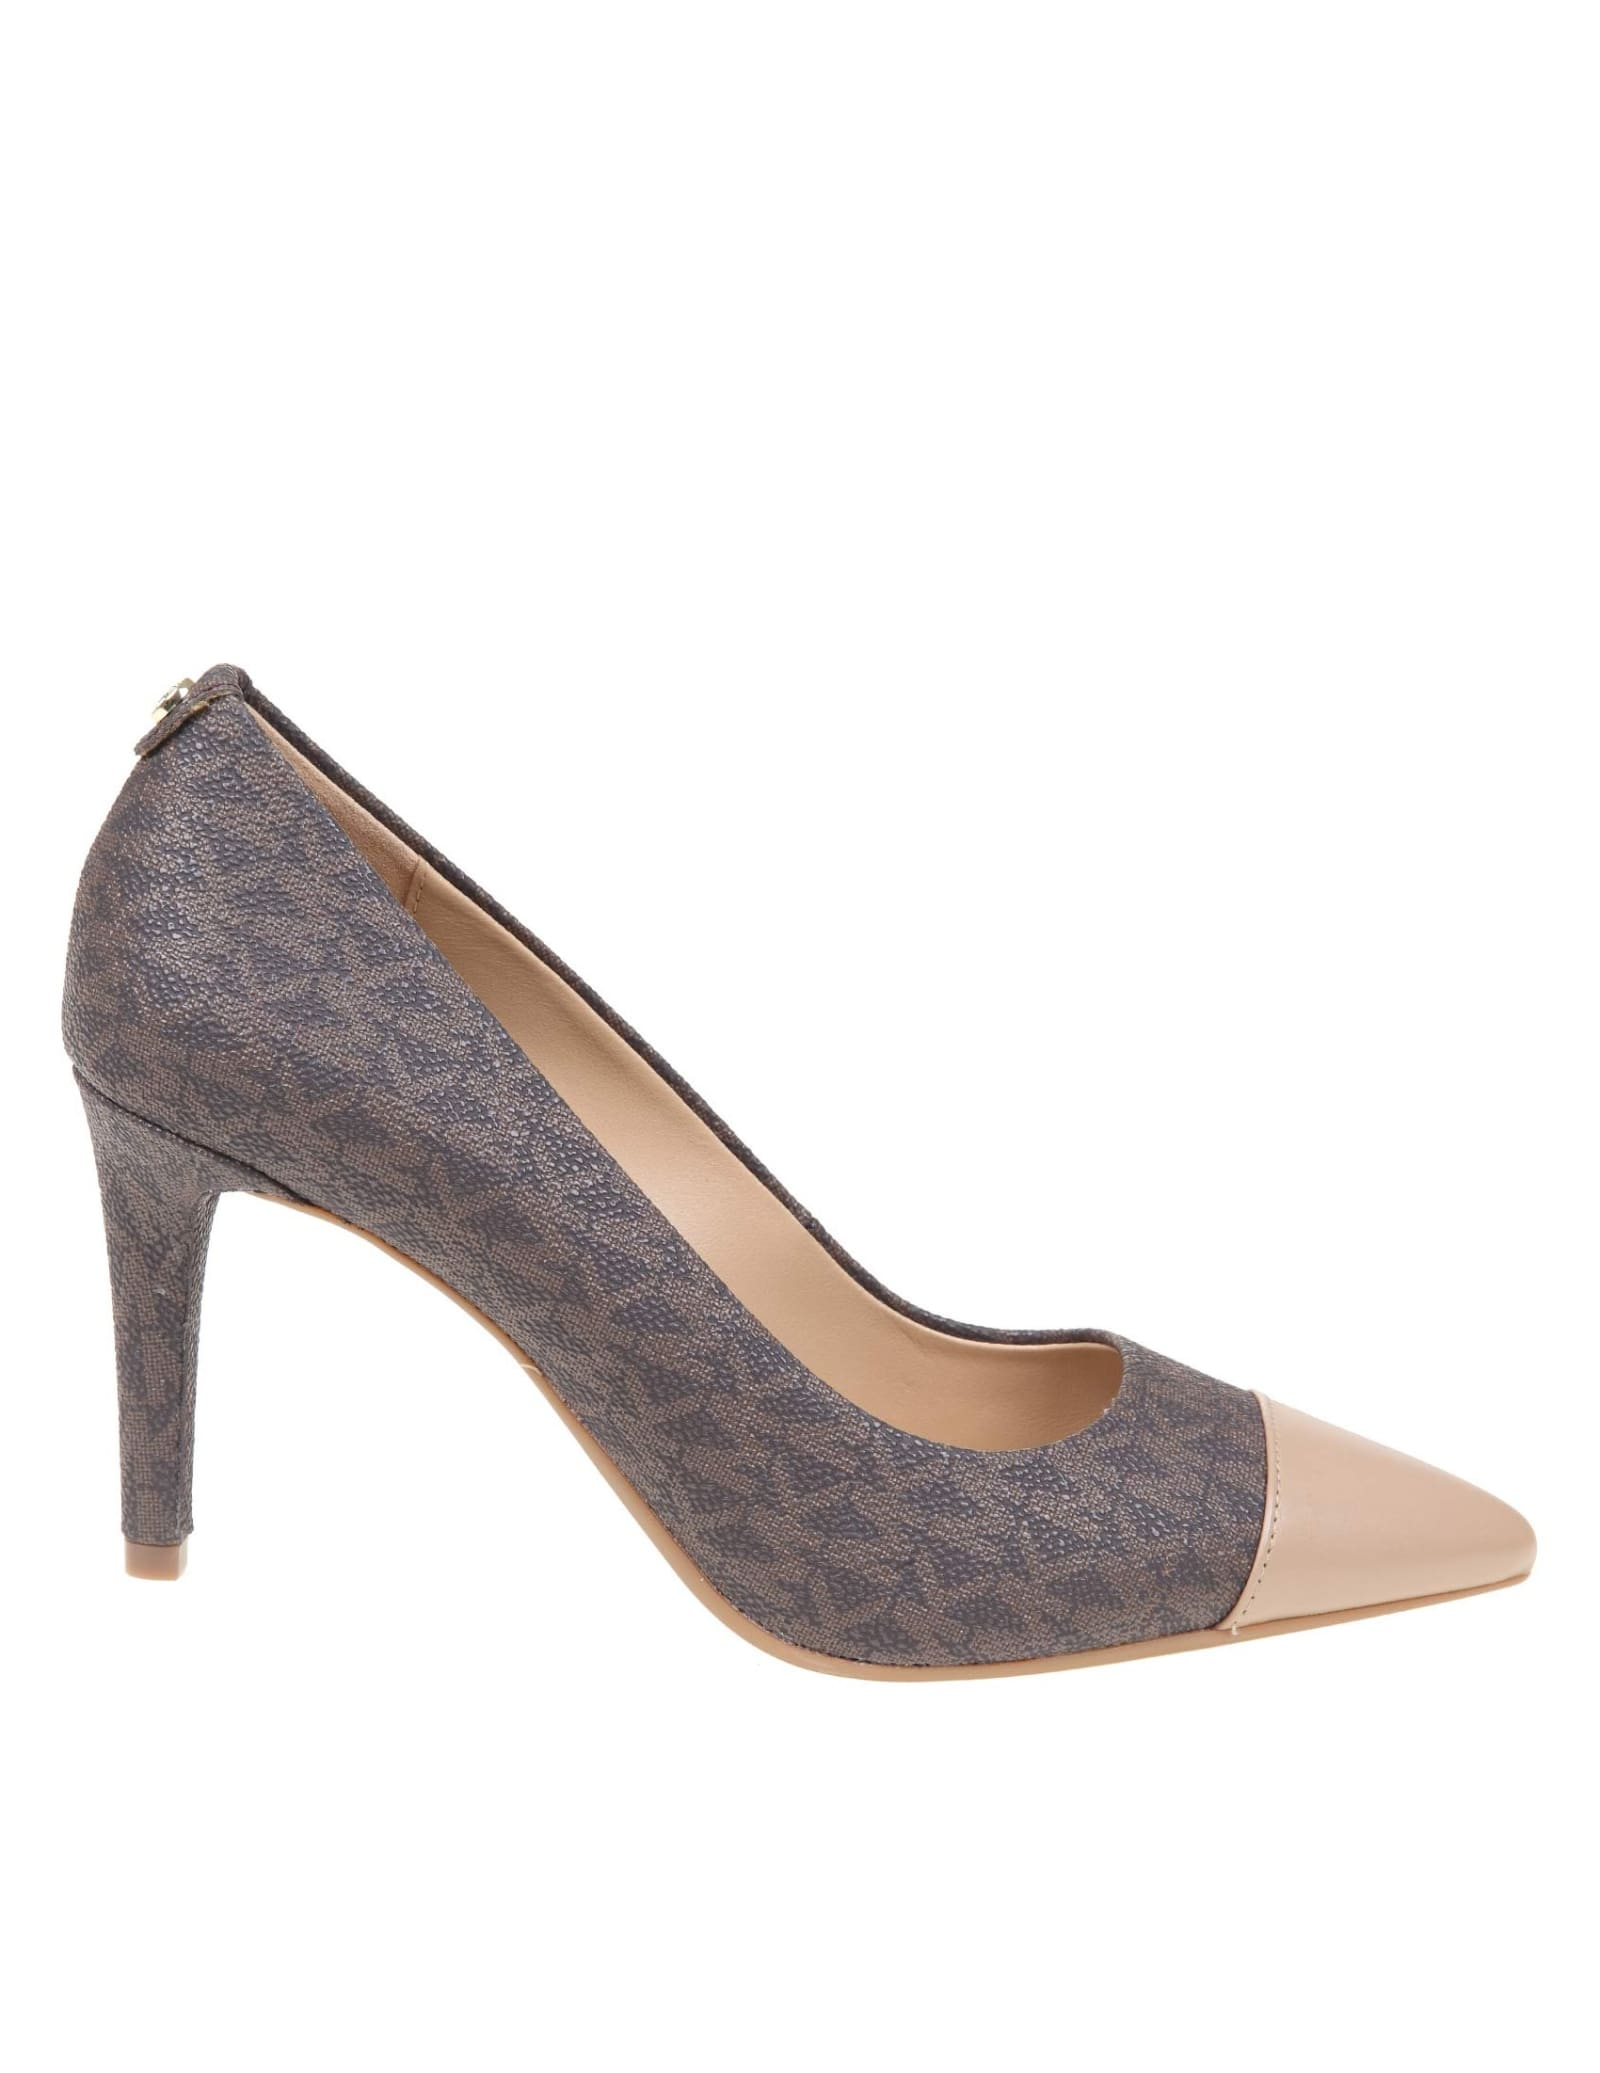 Buy Michael Kors Decollete dorothy Flex In Leather online, shop Michael Kors shoes with free shipping